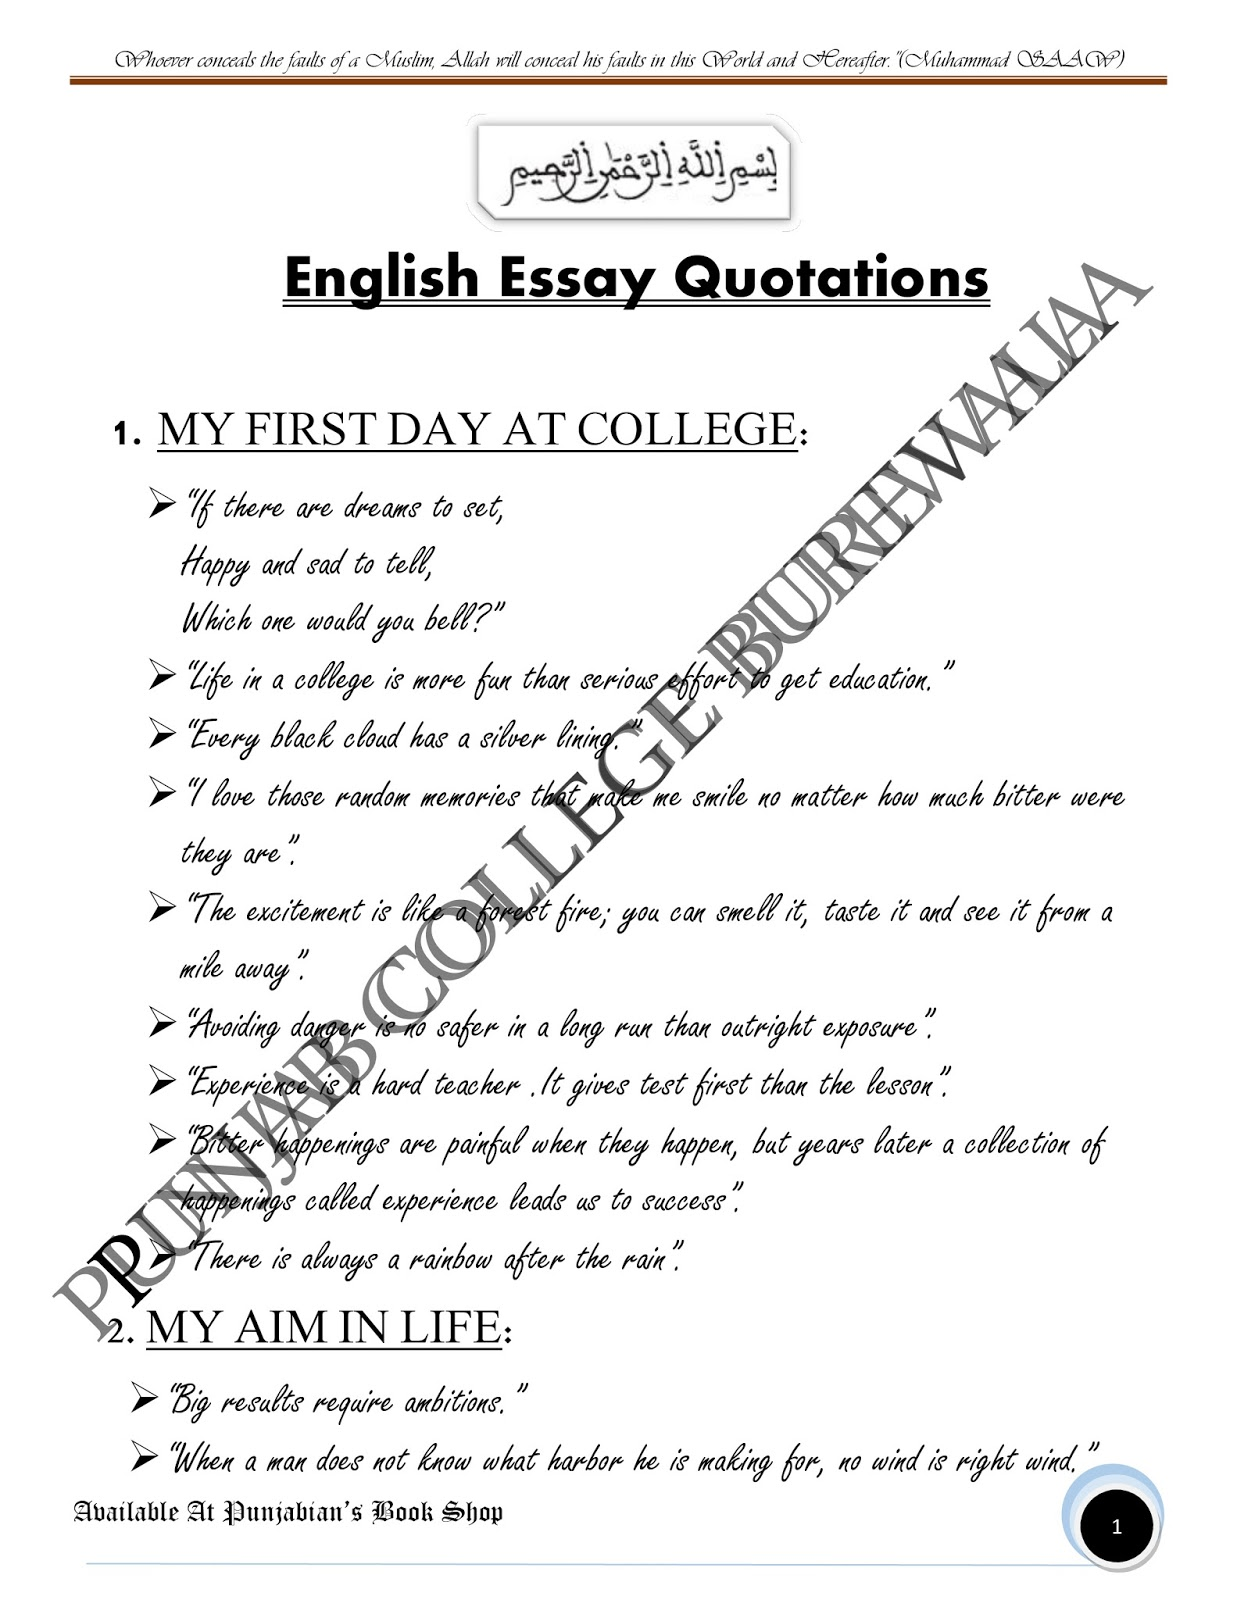 All Exam Soloutions And Notes English Paper Quotes English Paper 2016  Quotes. Essay Of My ...